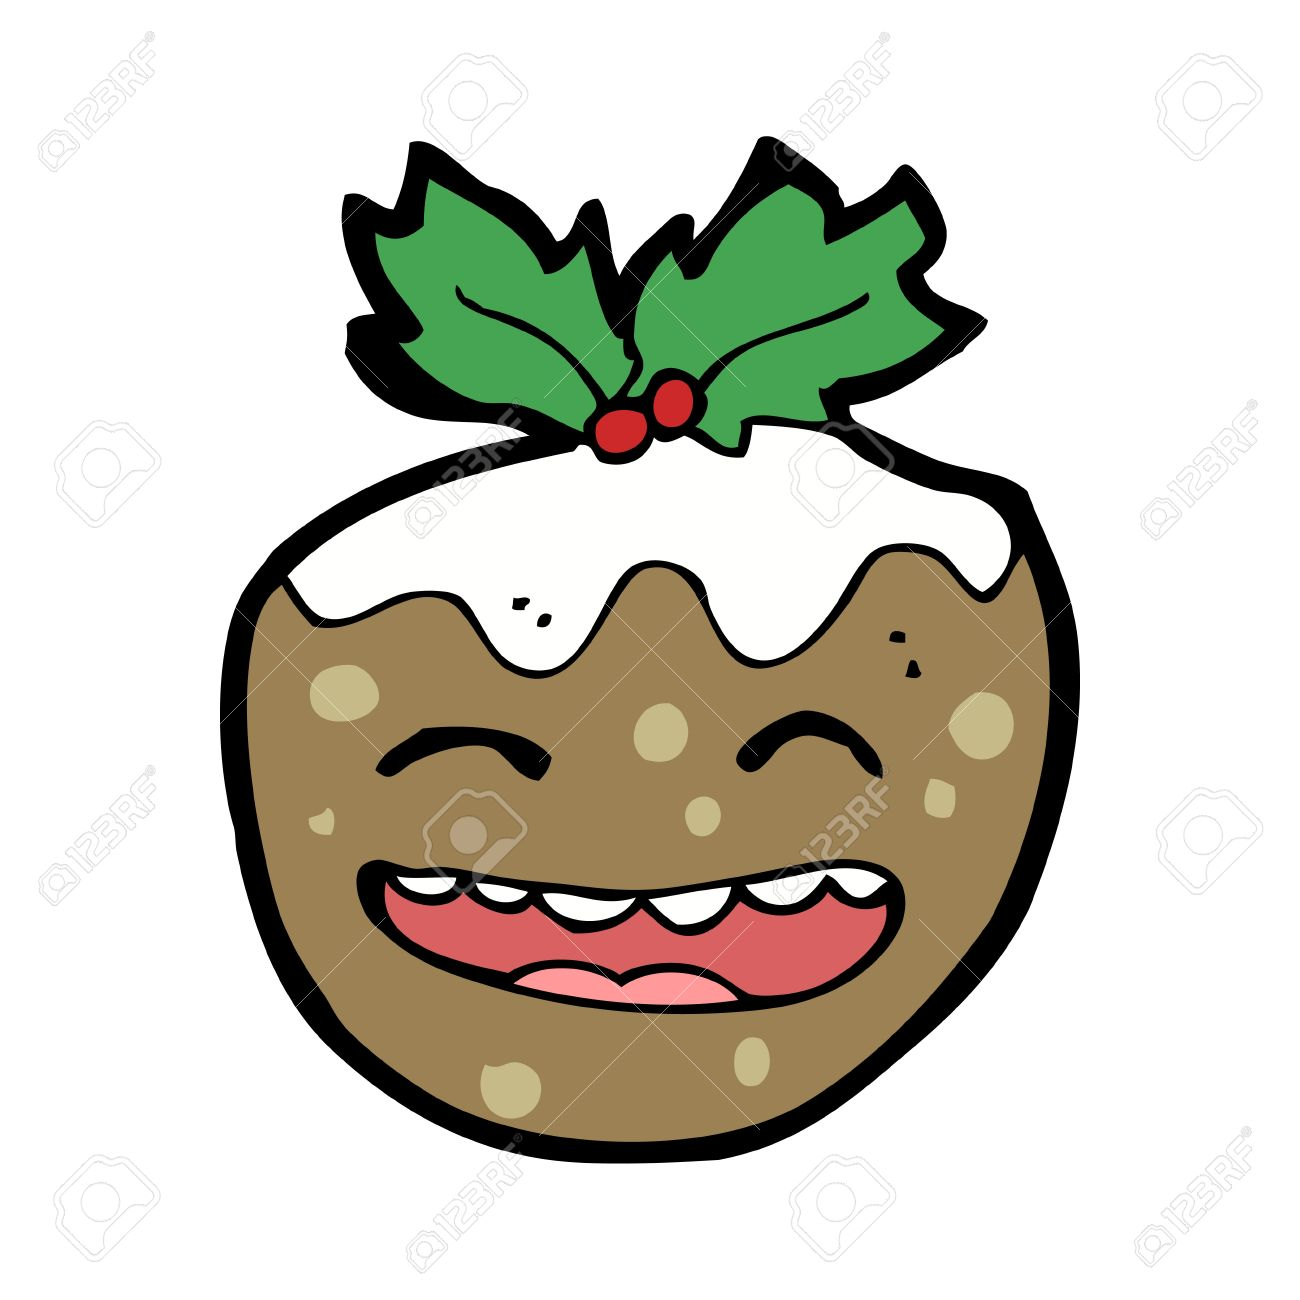 Cartoon pictures of christmas puddings